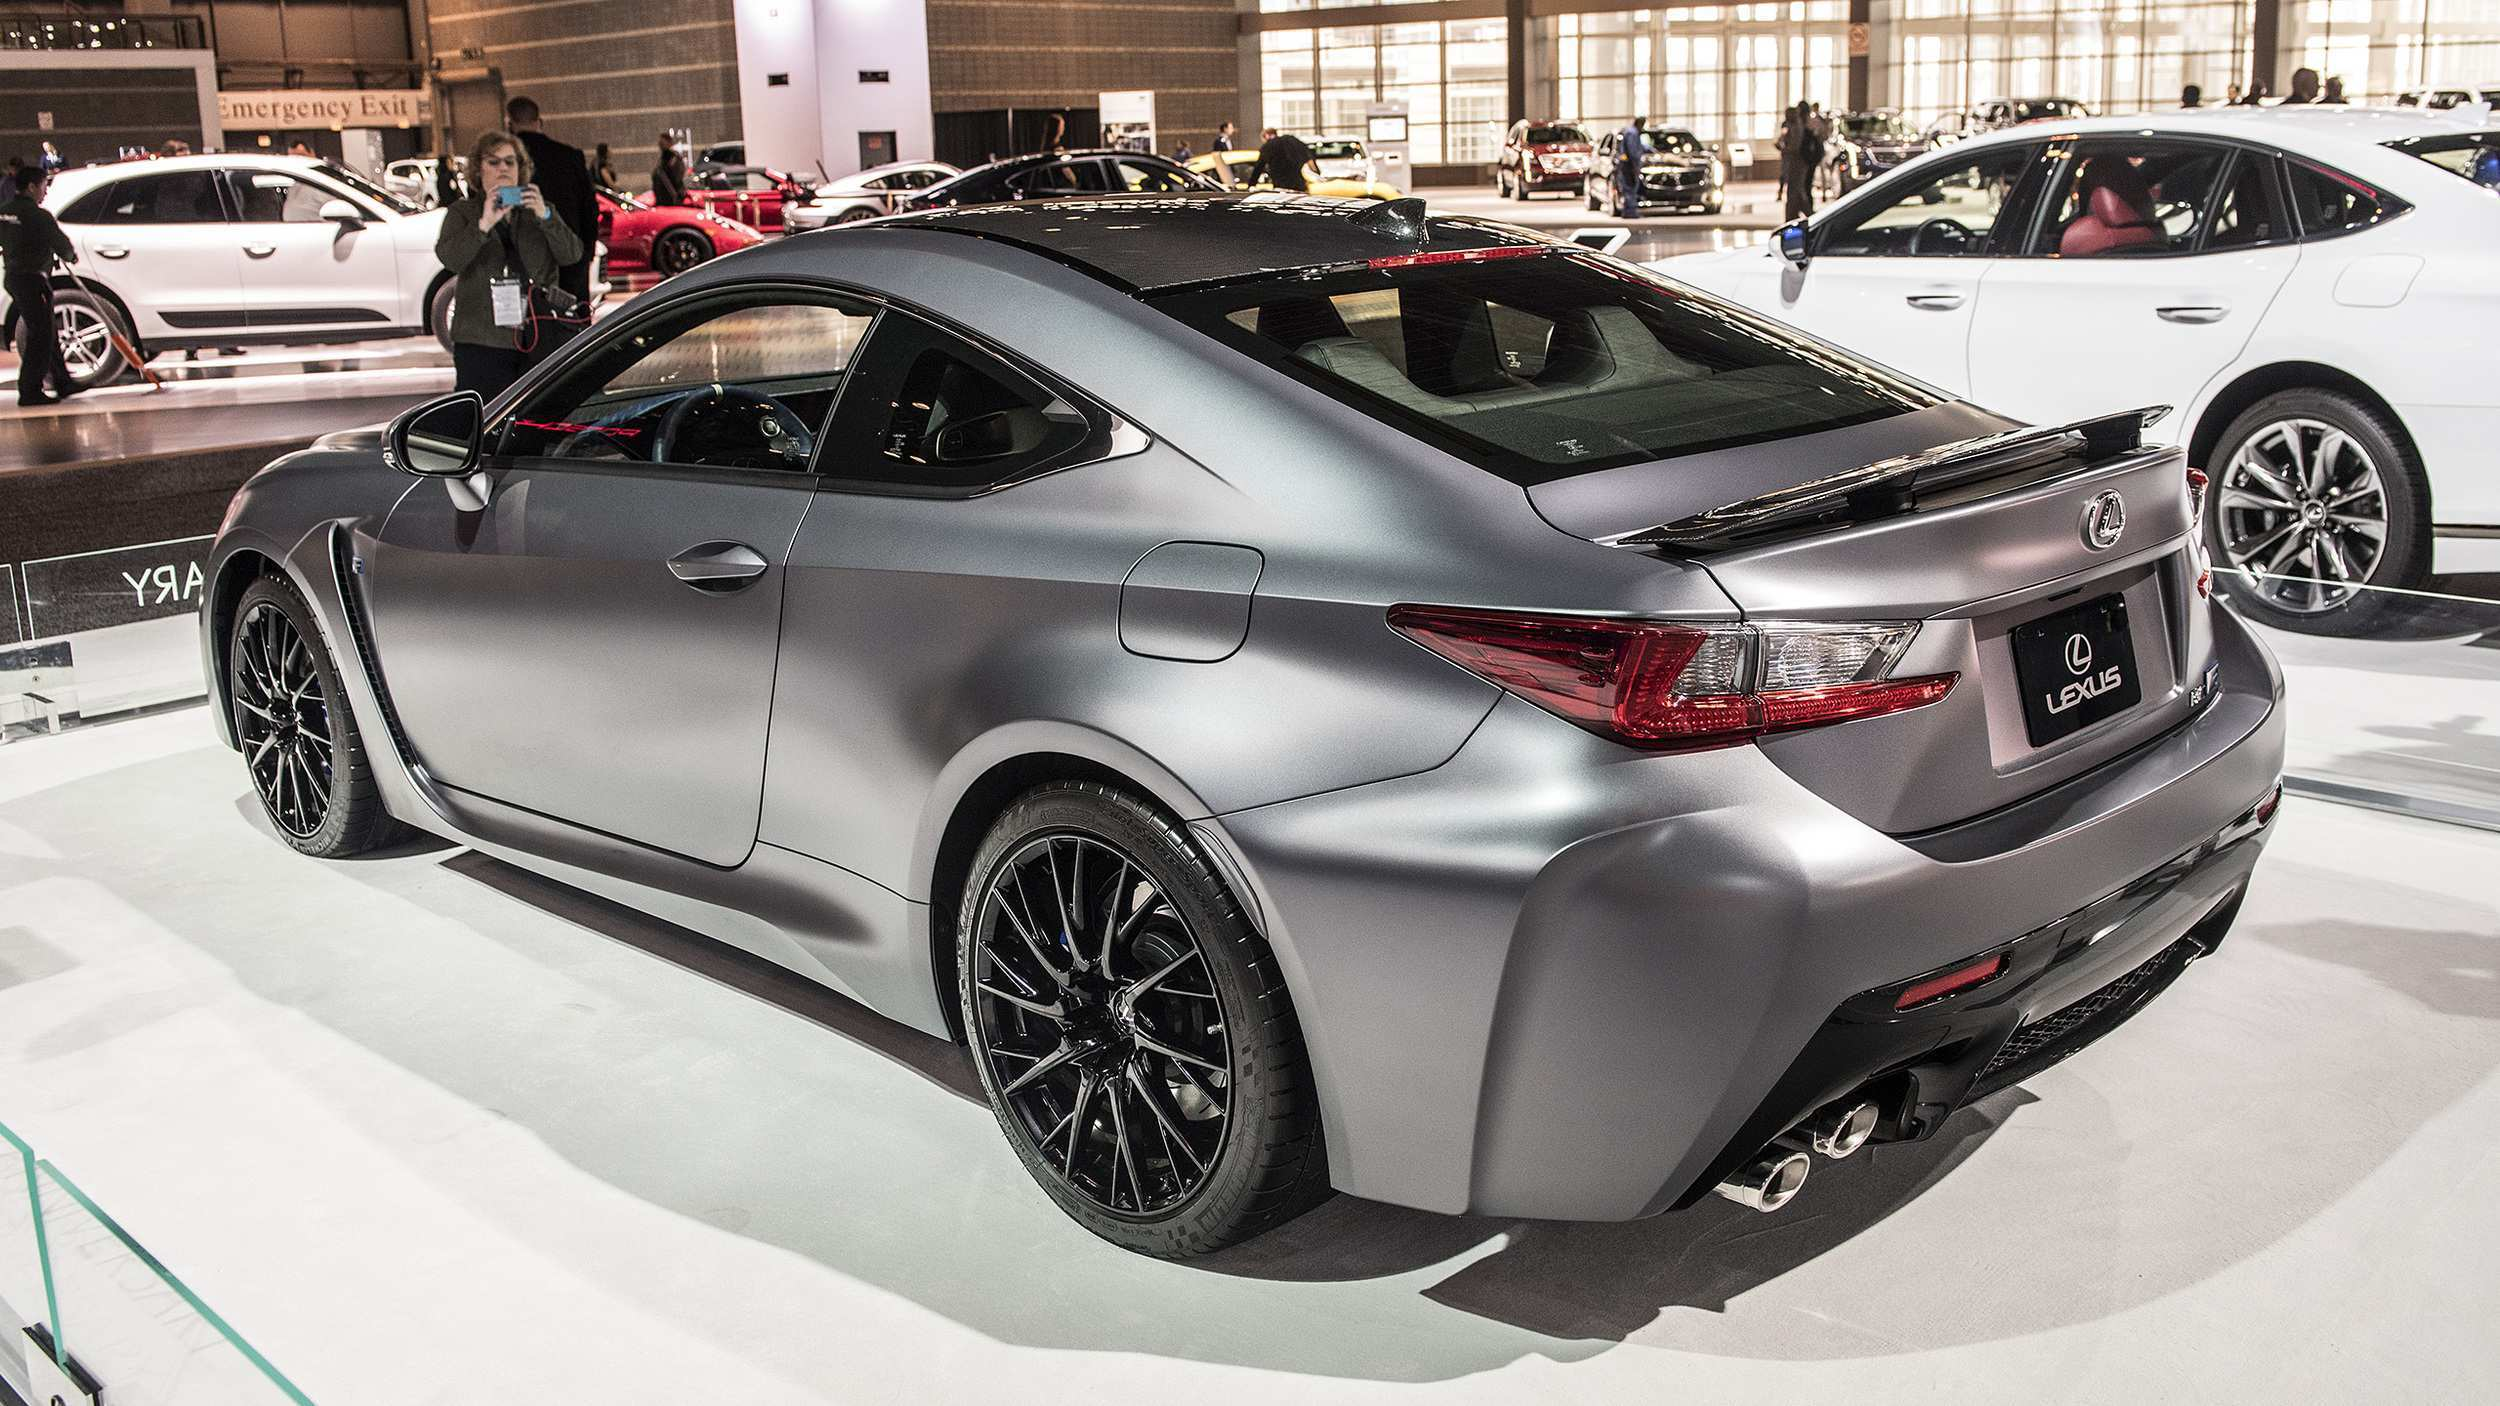 26 Gallery of Lexus Rcf 2019 History for Lexus Rcf 2019